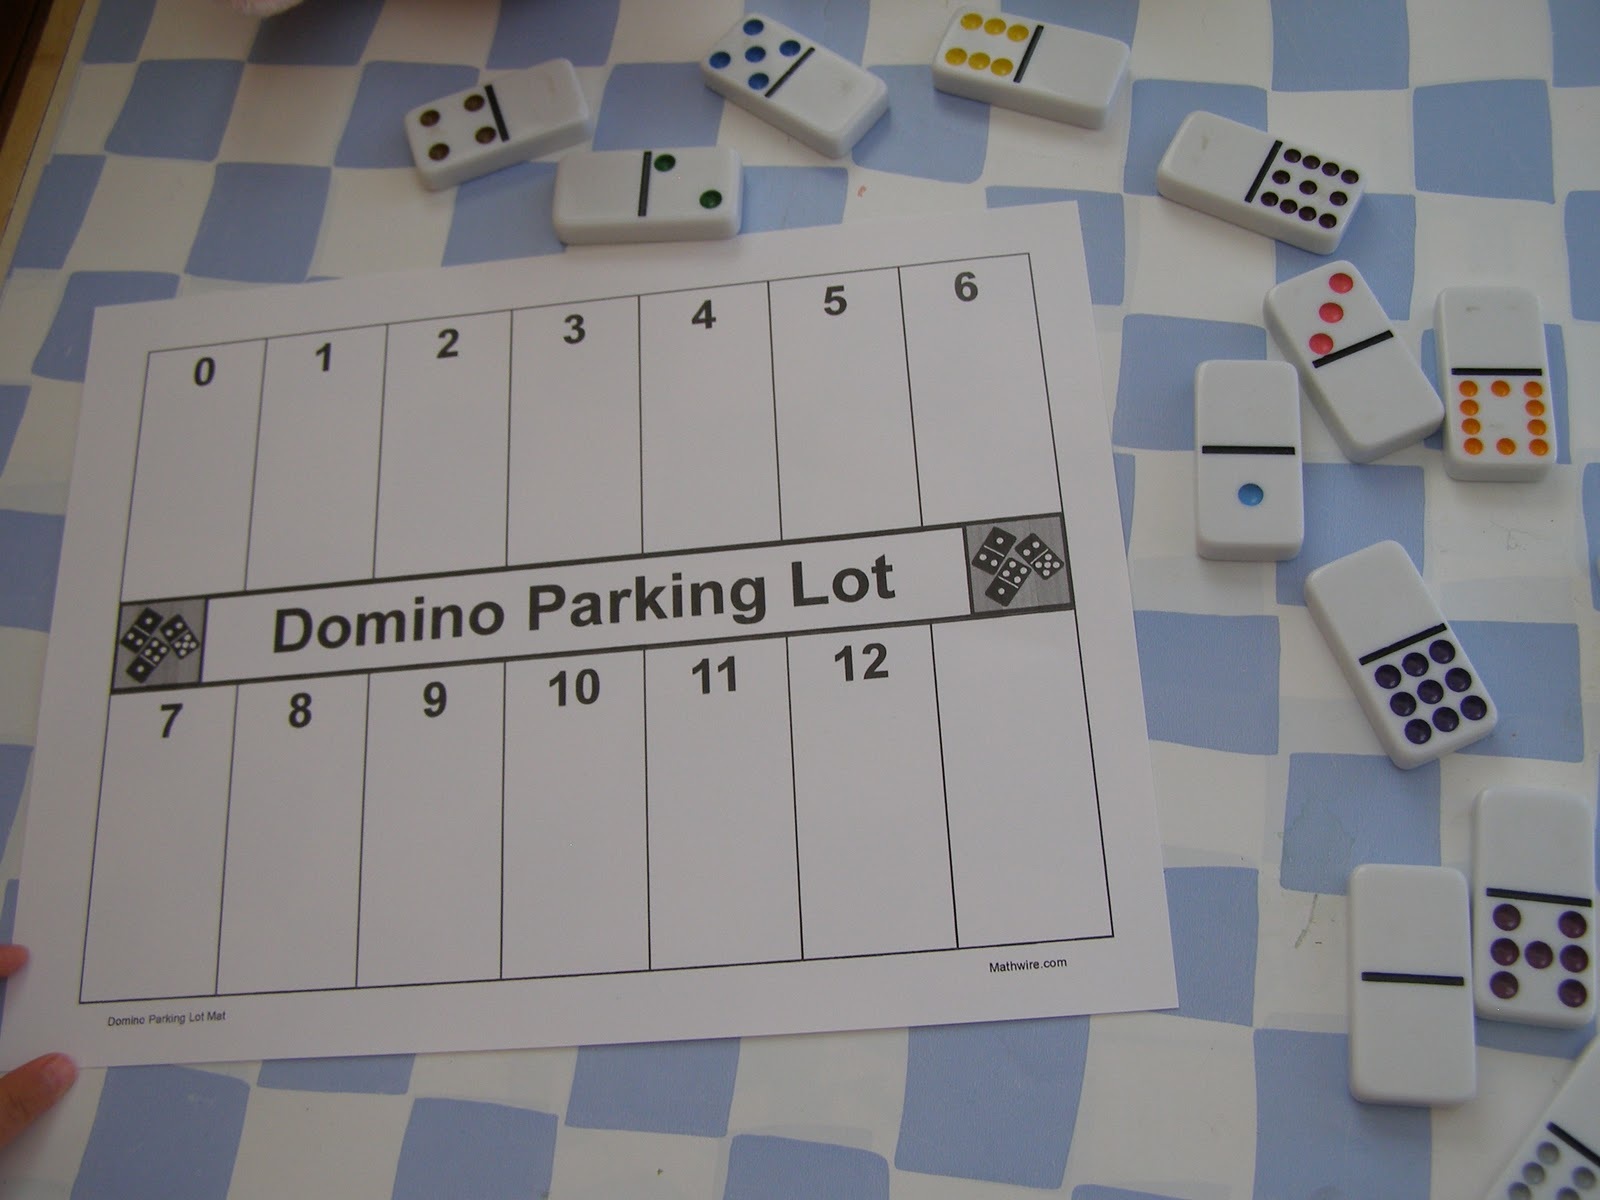 Home)School of the Blogosphere: Domino Parking Lot